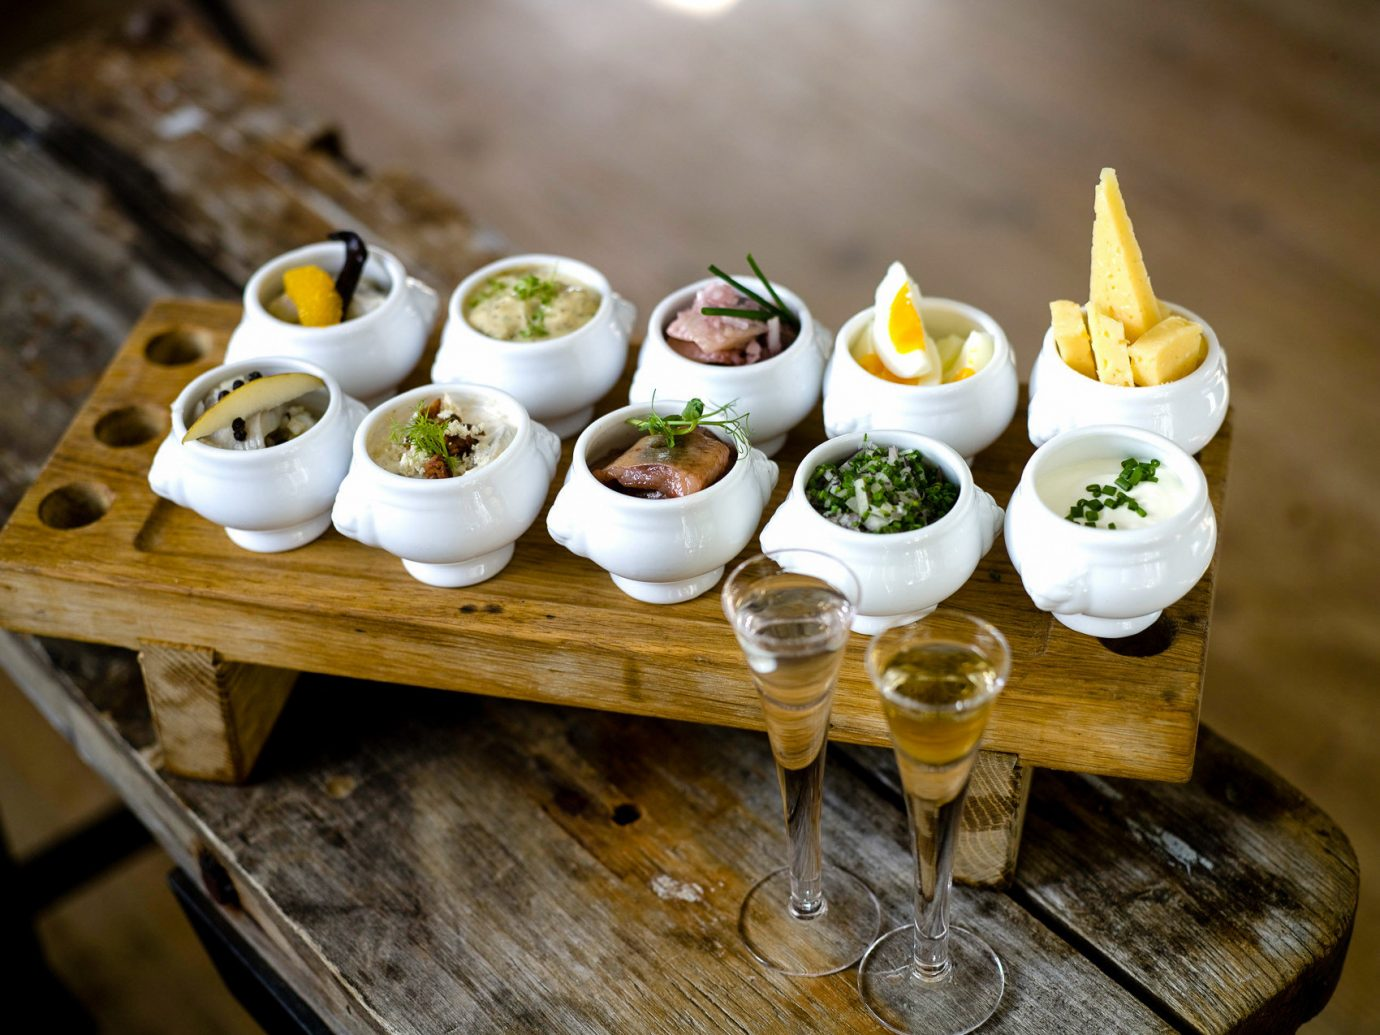 Boutique Hotels Sweden table food dish plate indoor appetizer finger food meal brunch wooden cuisine breakfast dessert hors d oeuvre canapé tray